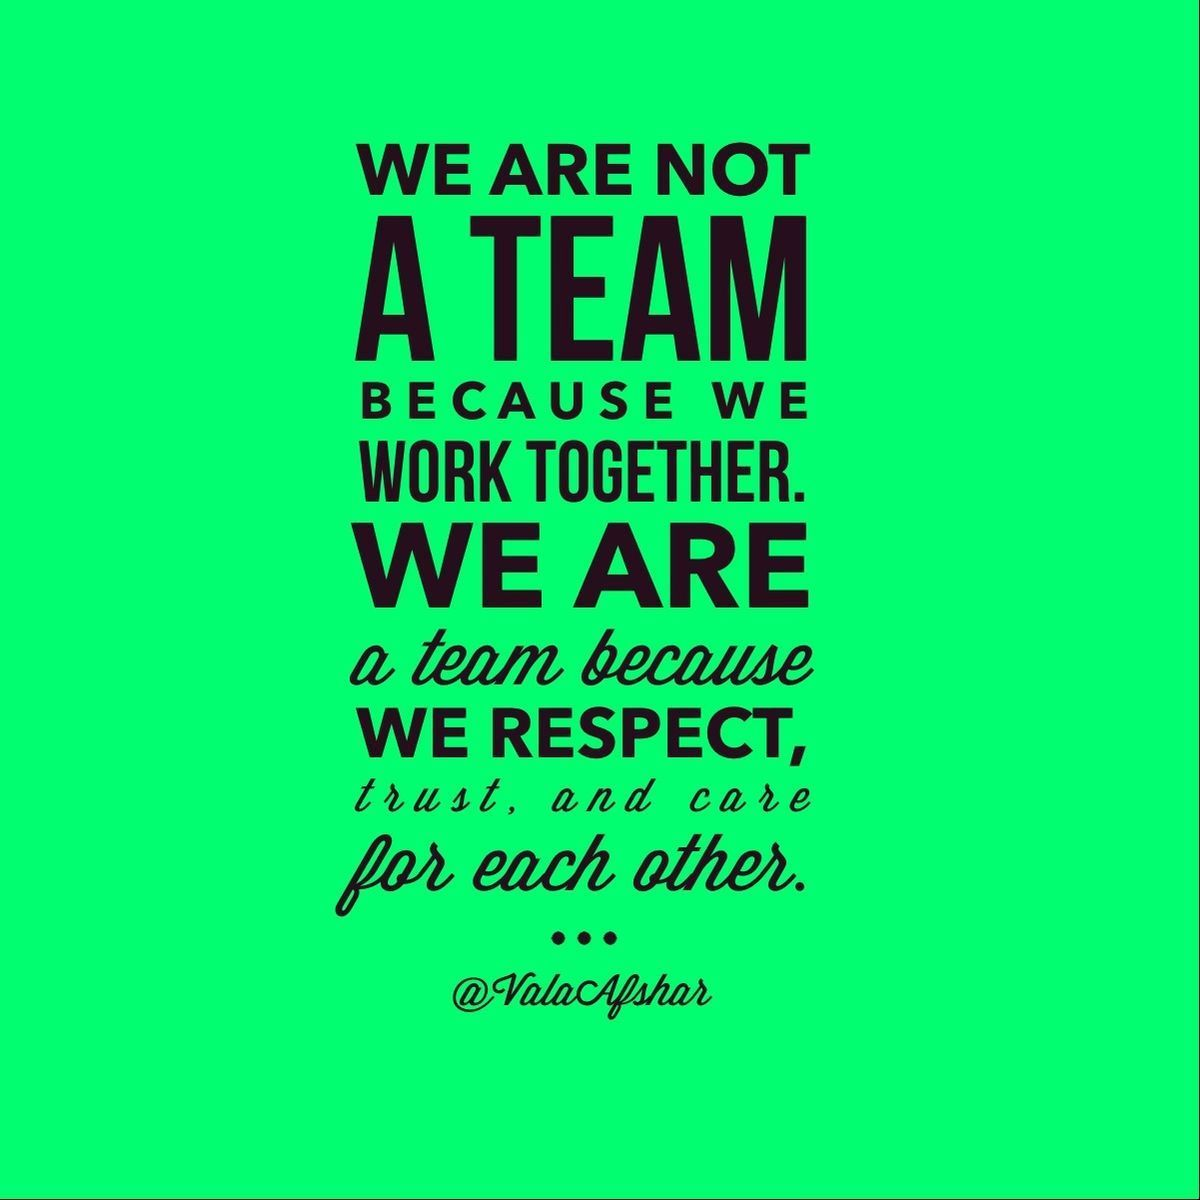 We are a Team because we respect trust and care for each